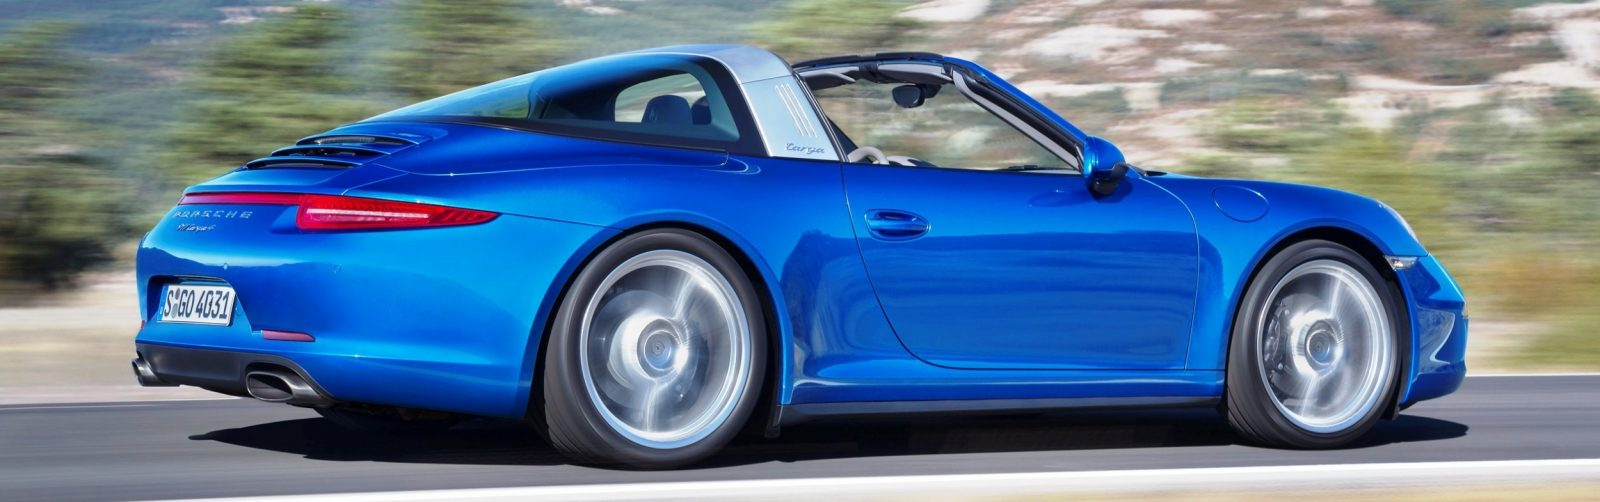 2014 Porsche 911 Targa4 and Targa4S - Roof Animations of 400HP Surf 'n Turf Supercar 8